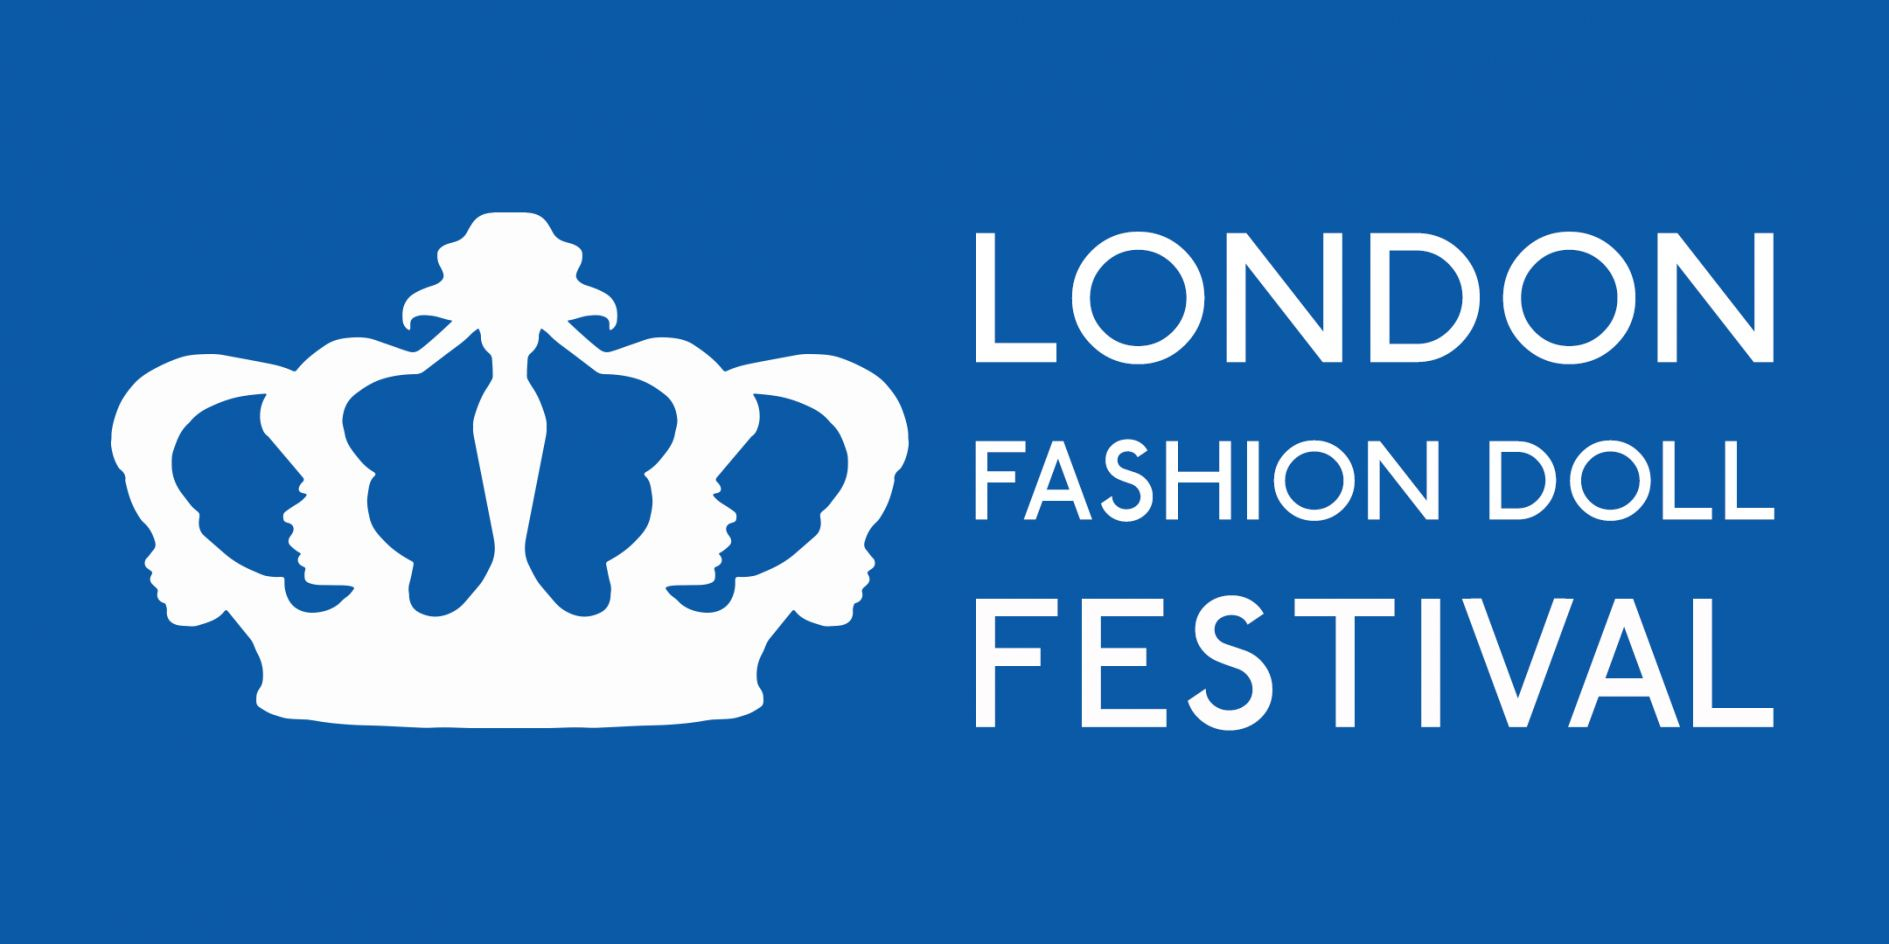 London Fashion Doll Festival Logo